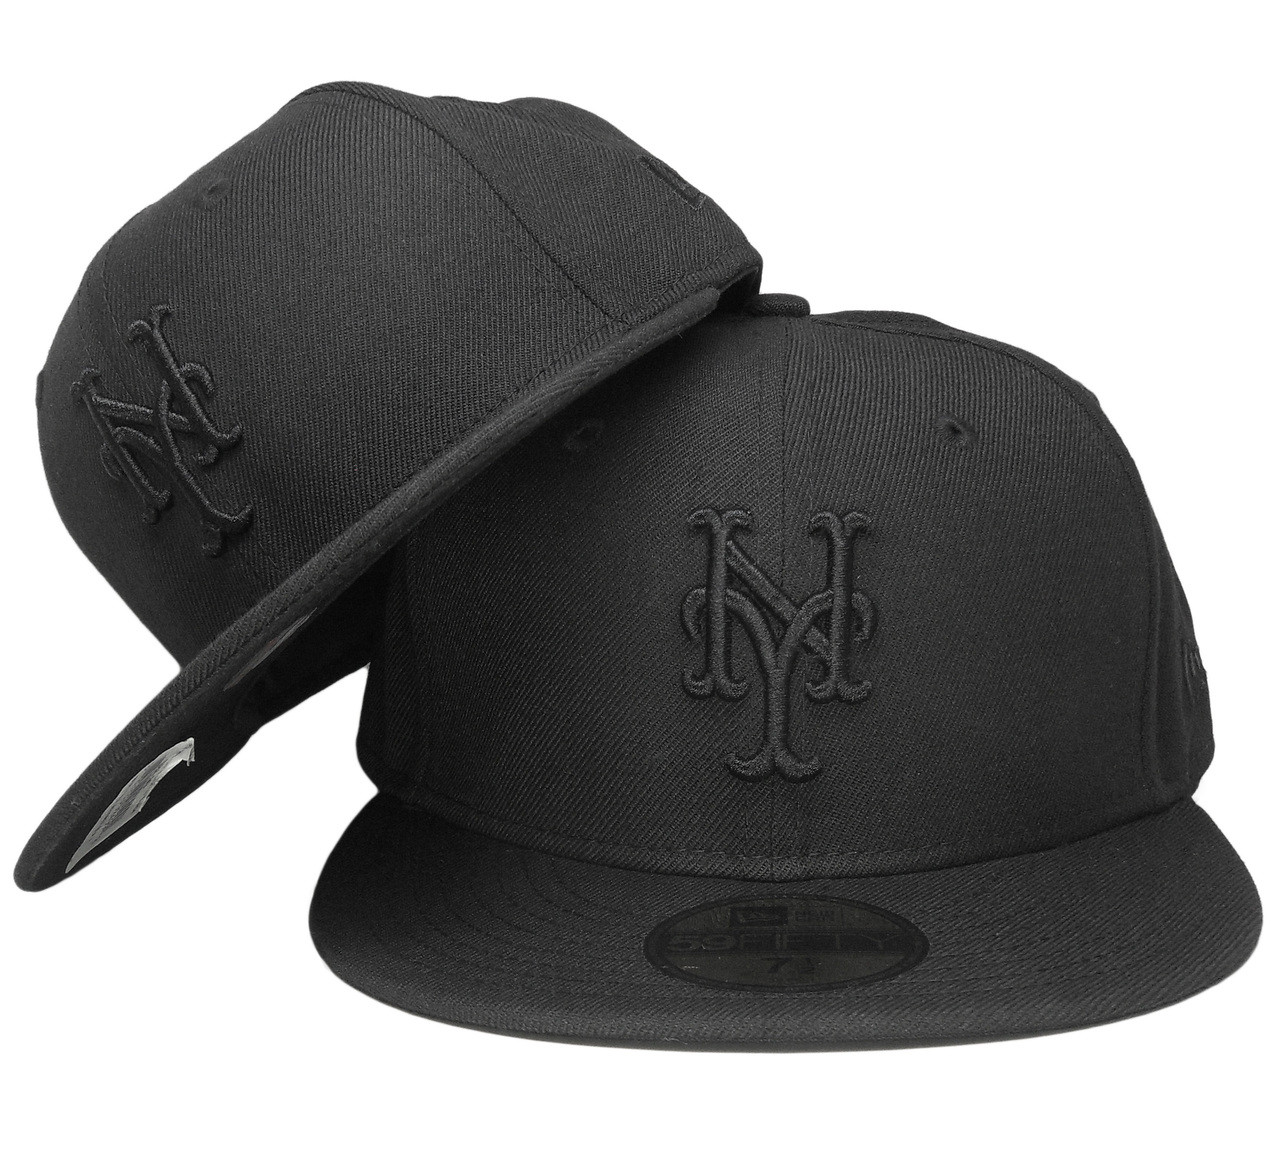 f99957419e9 New York Mets New Era All Black 59Fifty Fitted Hat - Black ...